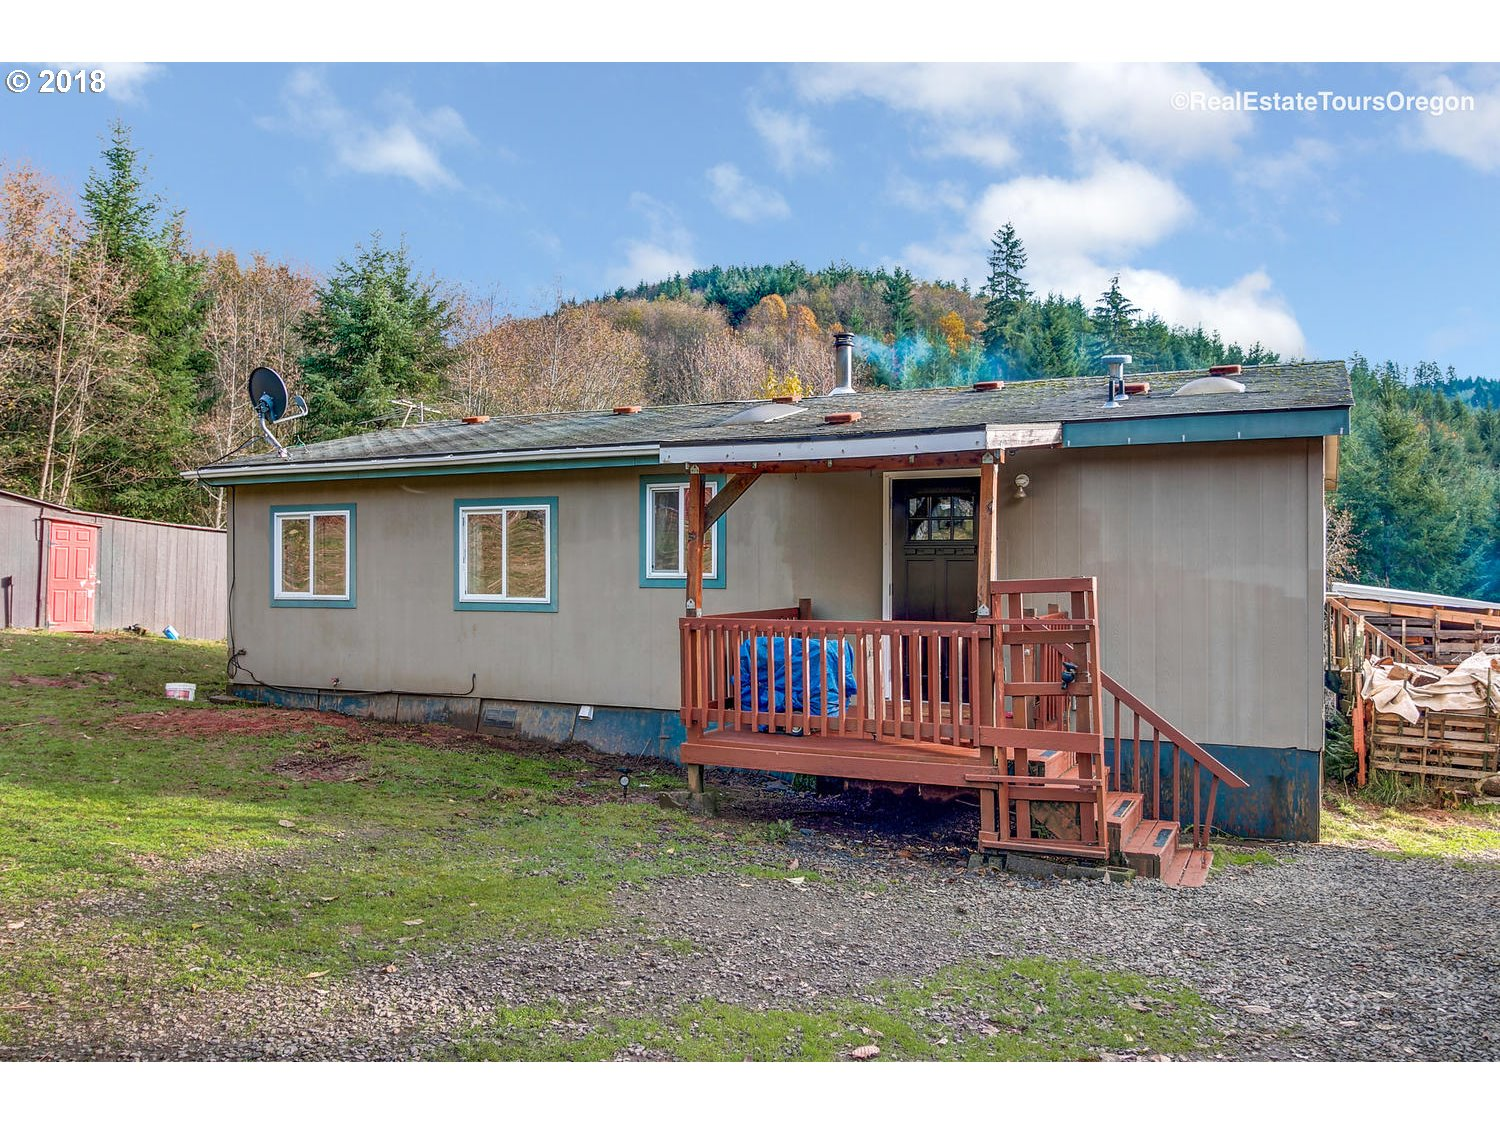 Cute & cozy manufactured home on a beautiful and private 6.04 acre lot. Well maintained and cared for inside and out. Enter to a vaulted kitchen with skylight, an abundance of cabinet space and separate dining area. Vaulted living room w/ wood-stove & slider to HUGE & COVERED back deck w/ gorgeous views to the Southern portion of the property. Master bedroom w/ attached bath with double sinks. Numerous outbuildings and space to play.